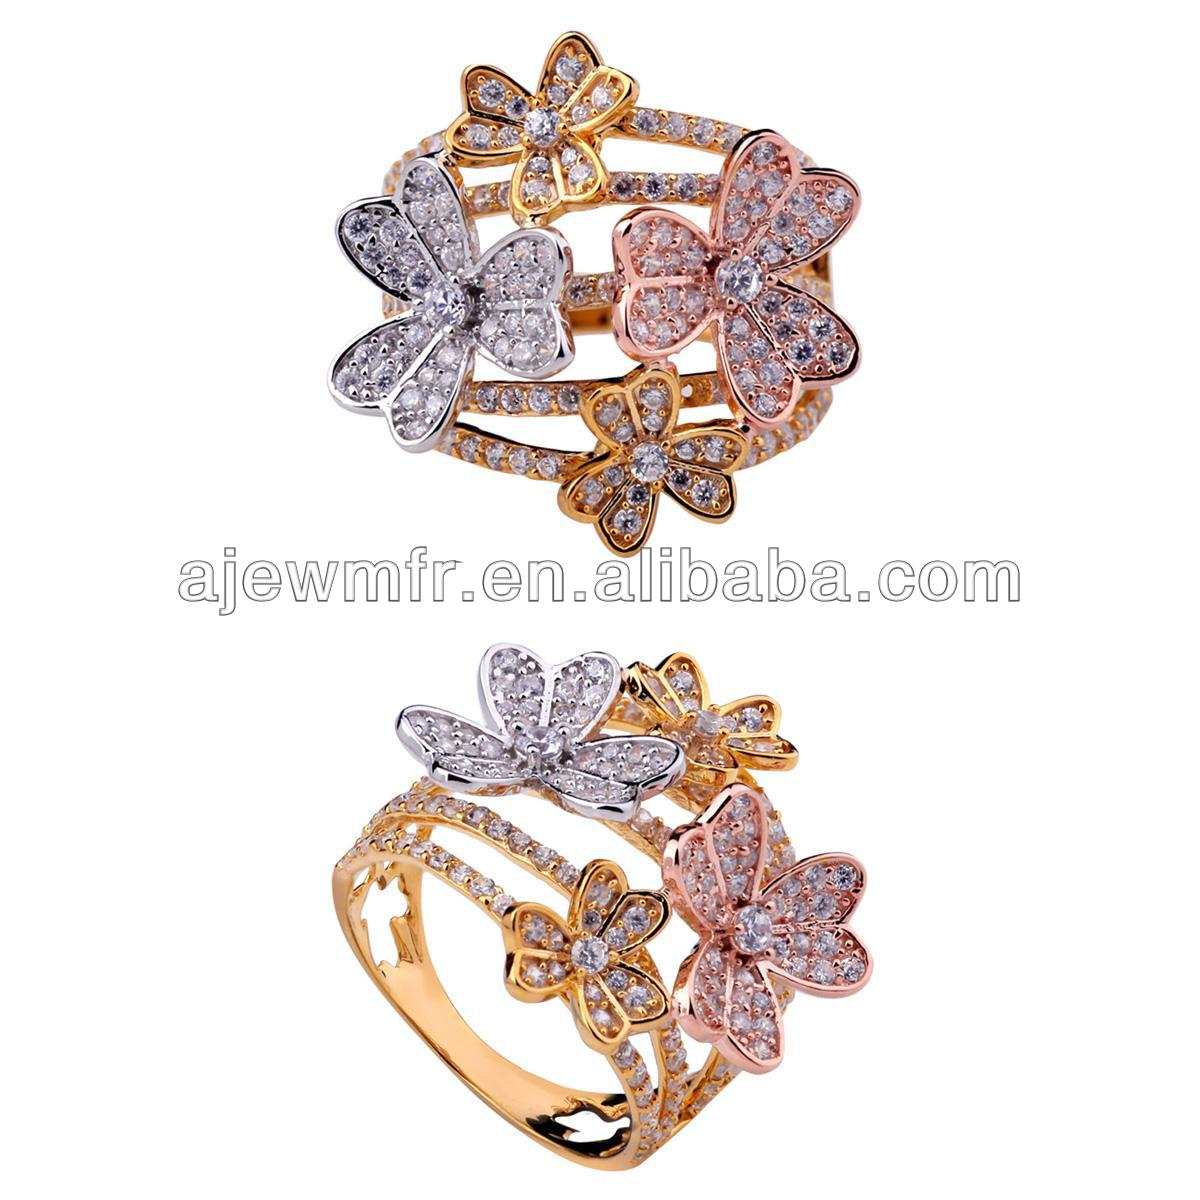 18k Saudi Gold Ring 18k cz Saudi Gold Jewelry